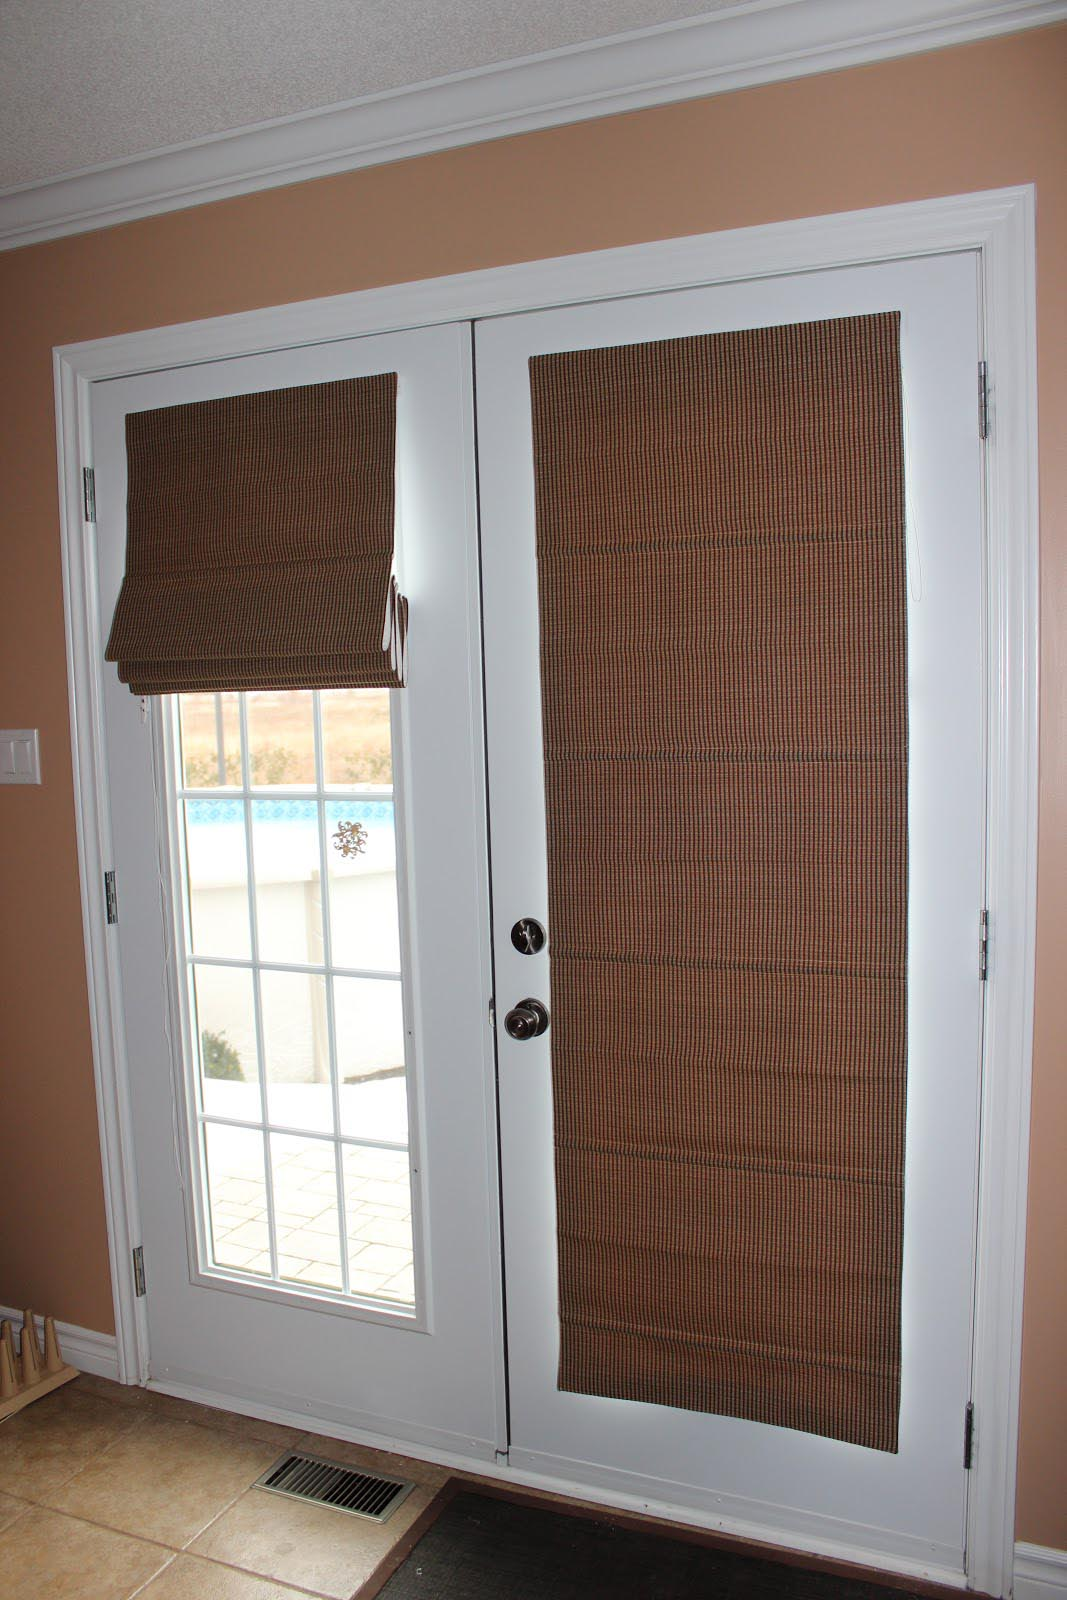 Blackout Shades for French Doors & Blackout Shades For French Doors | Window Treatments Design Ideas Pezcame.Com